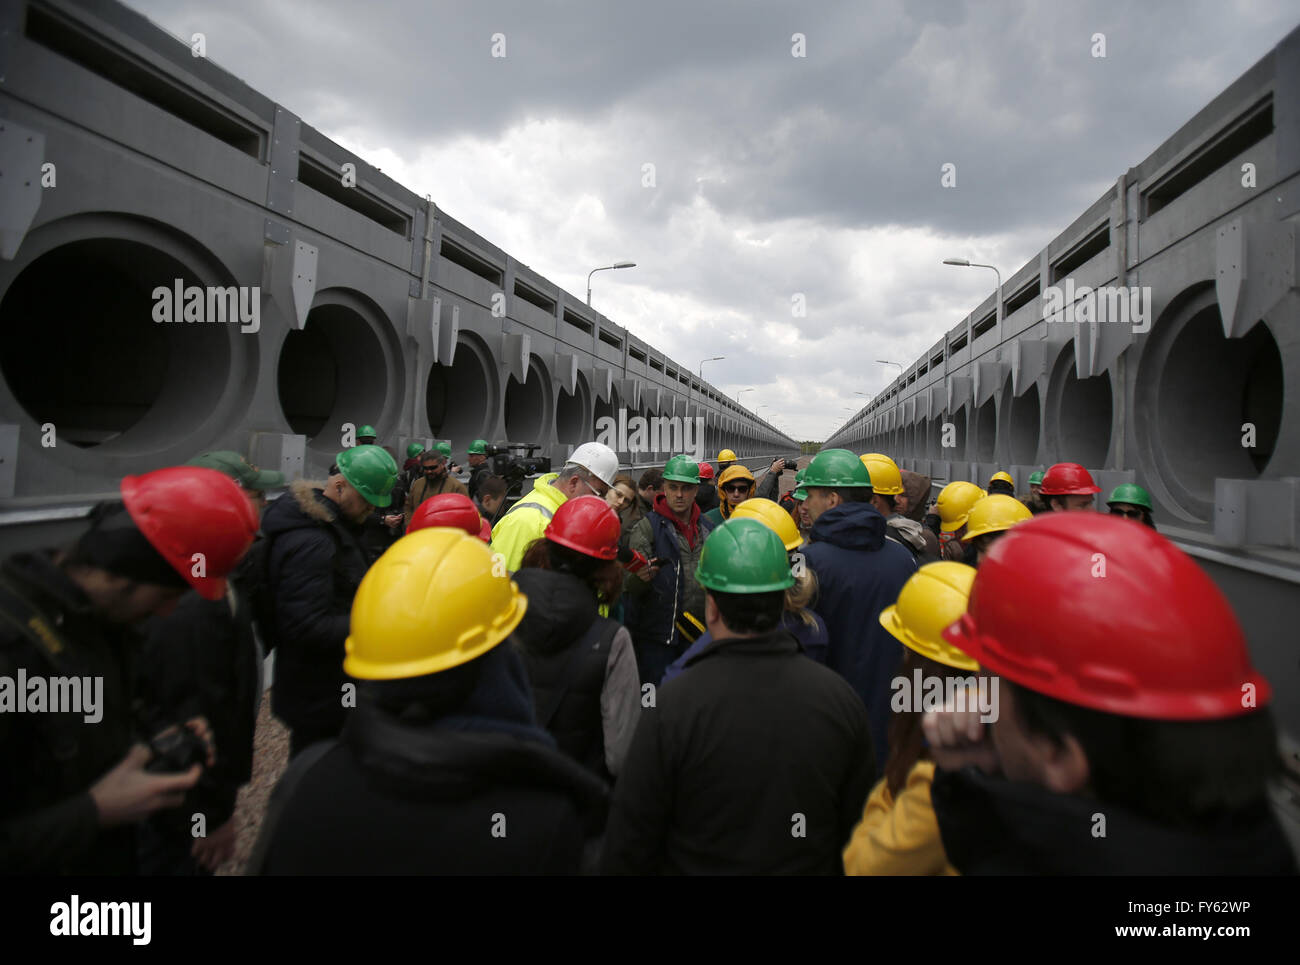 April 22, 2016 - Journalists are seen at the  nuclear-fuel storage facility next to the Chernobyl Nuclear Power - Stock Image